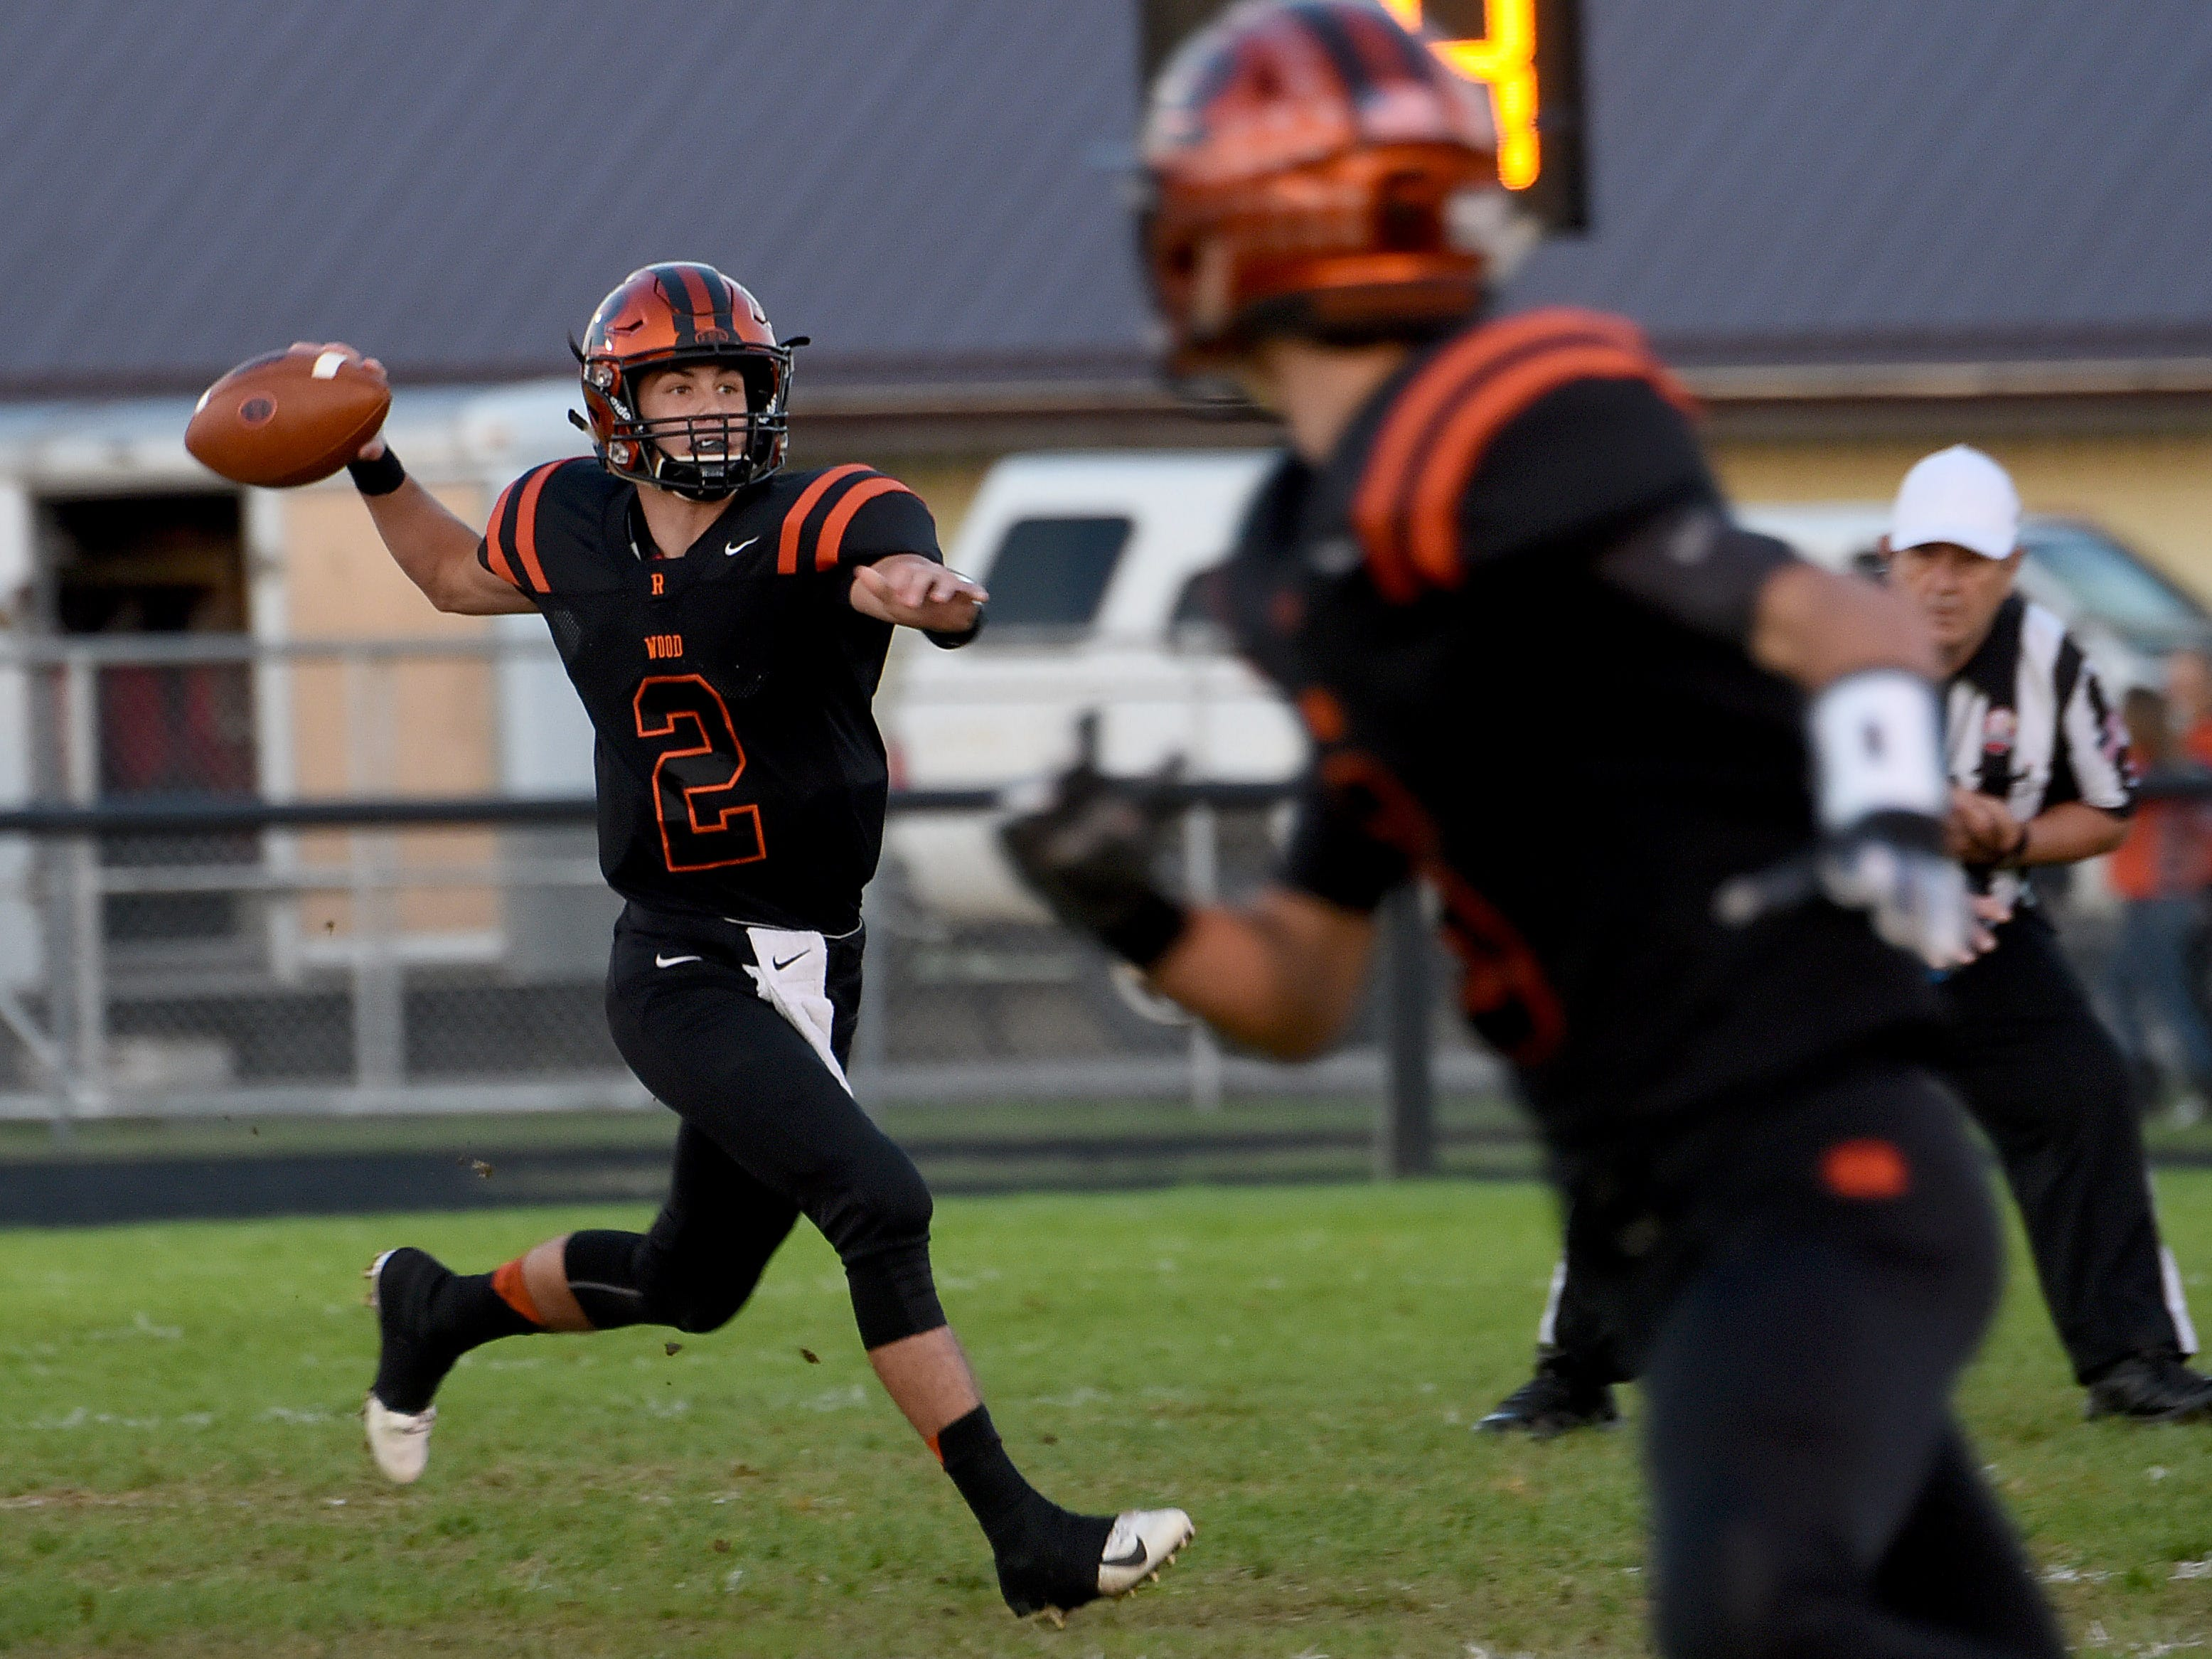 Ridgewood freshman quarterback Gabe Tingle looks for an opening during Friday night's game against Indian Valley. The Generals won 34-22.